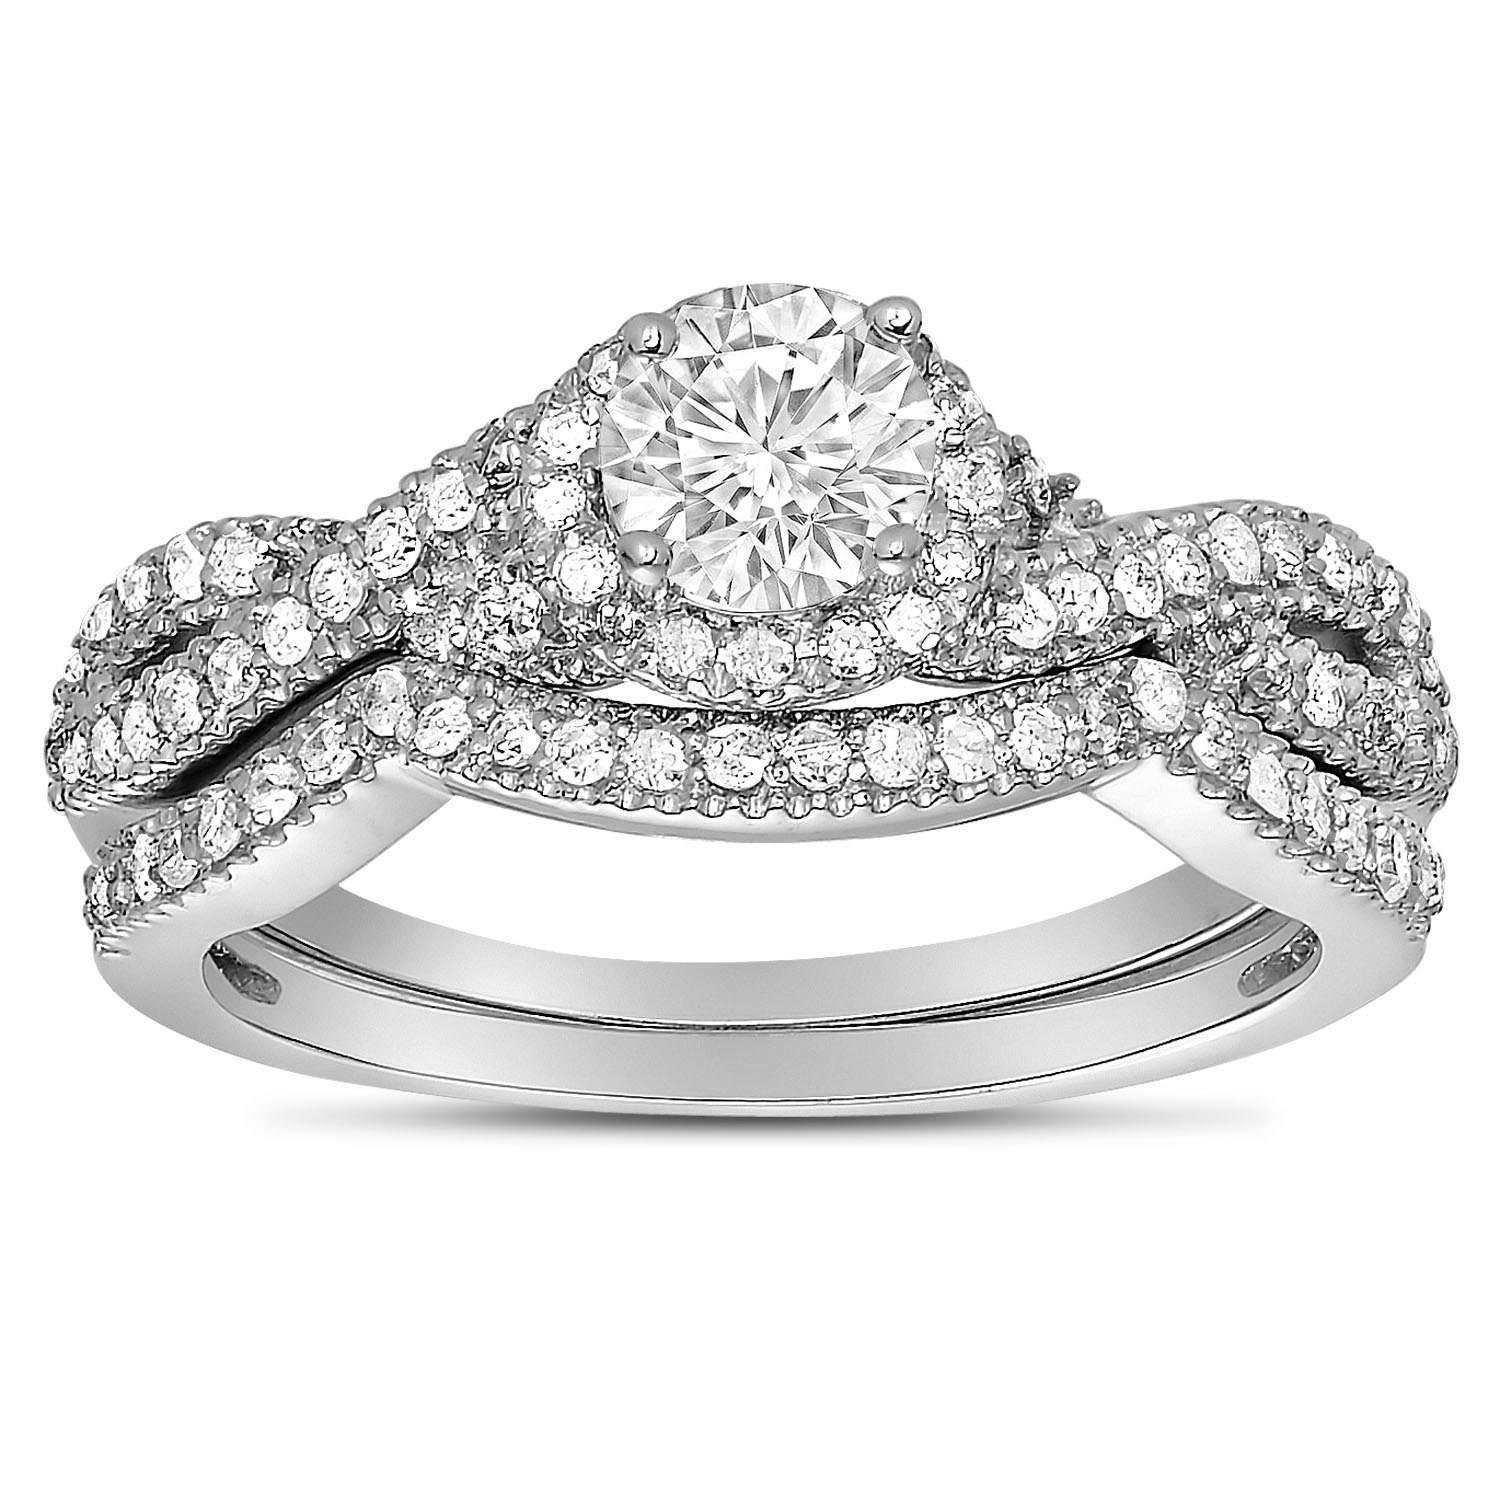 2 carat round diamond infinity wedding ring set in white gold for her walmartcom - Walmart Wedding Ring Sets